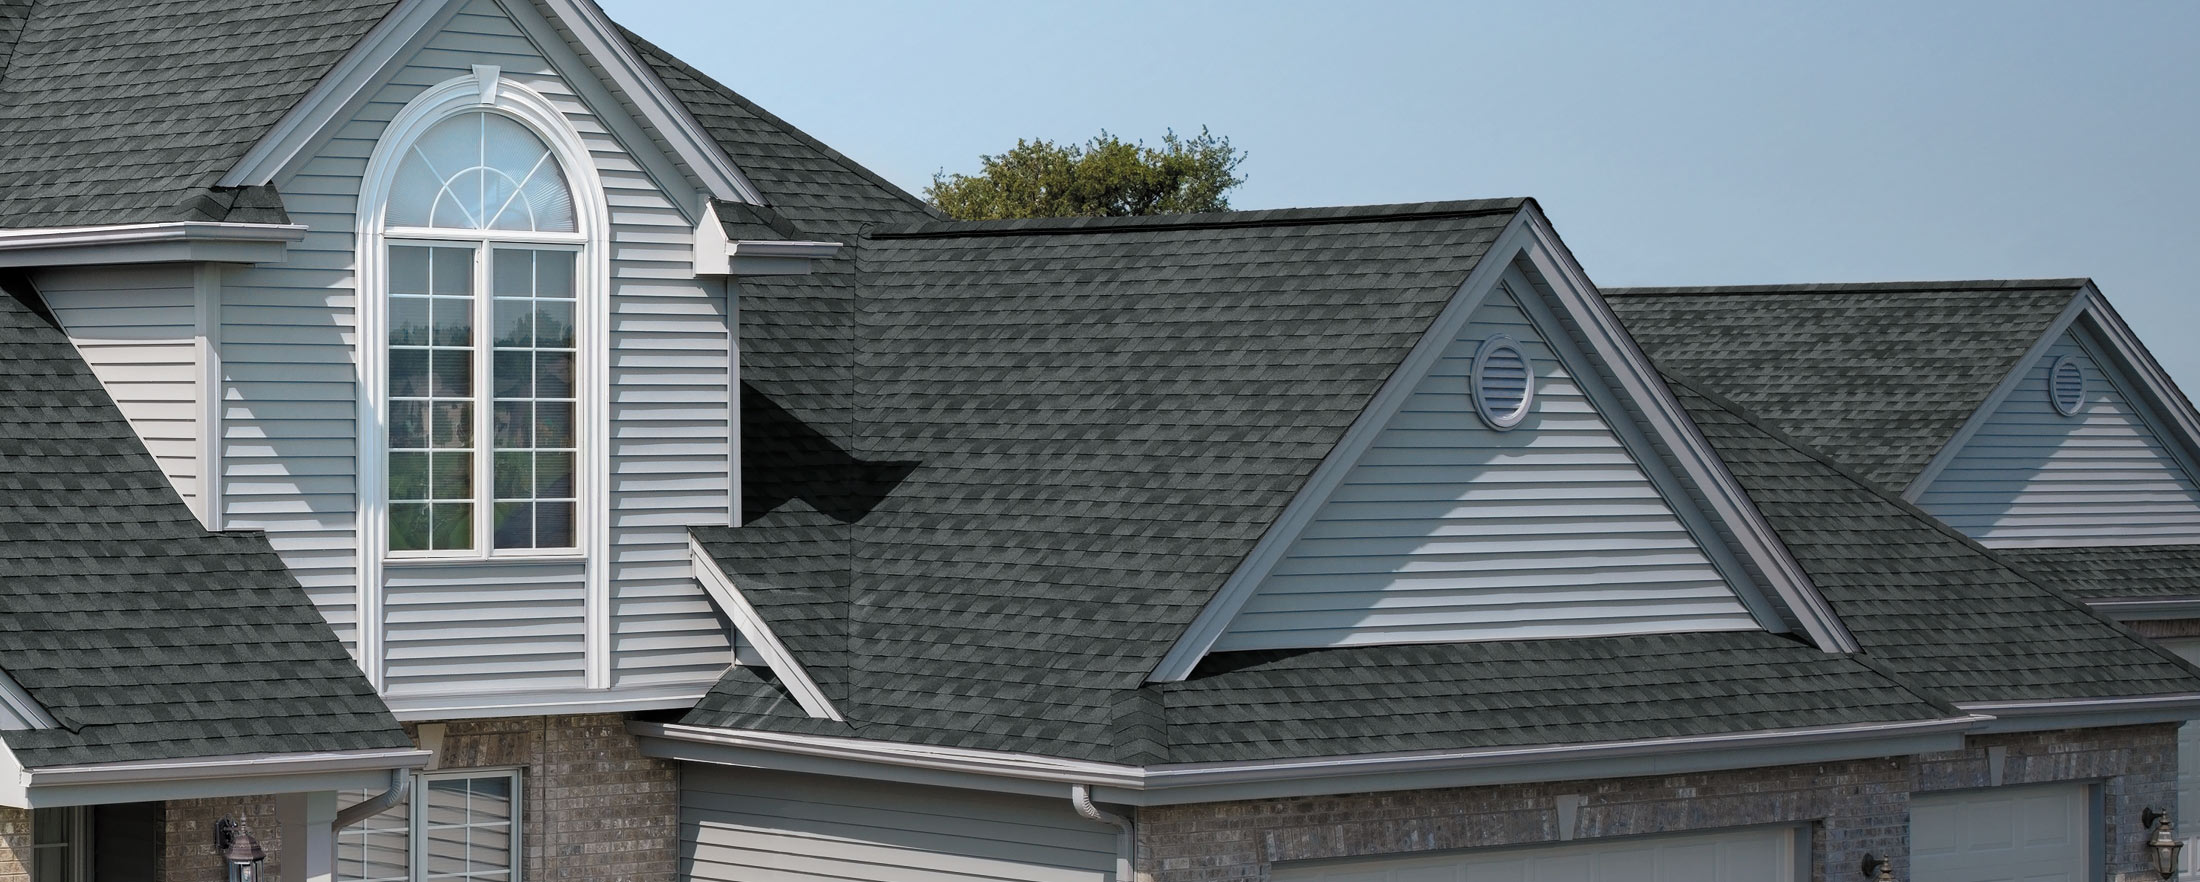 Orange County Roofing Company Amp Trusted Roofers